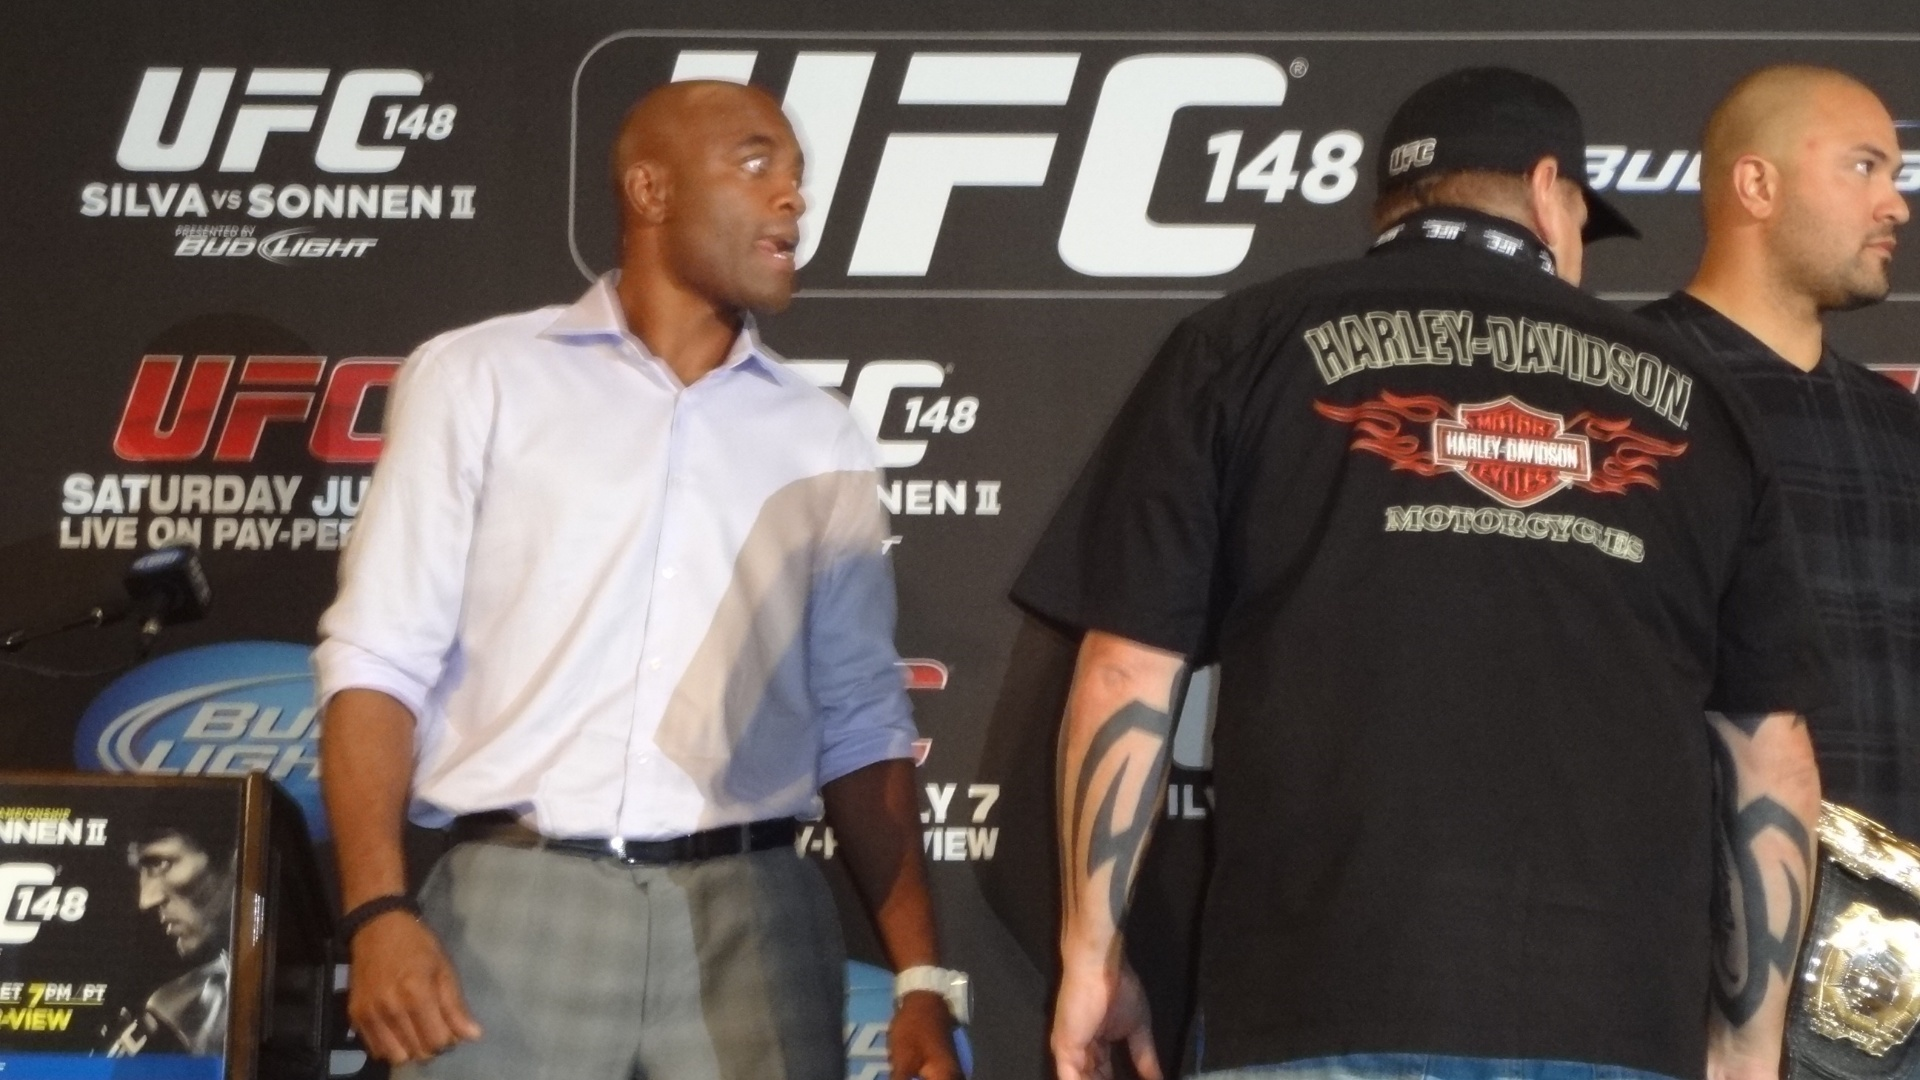 Anderson Silva faz cara de furioso ao ficar frente a frente com Sonnen; brasileiro teve de ser segurado na hora da encarar